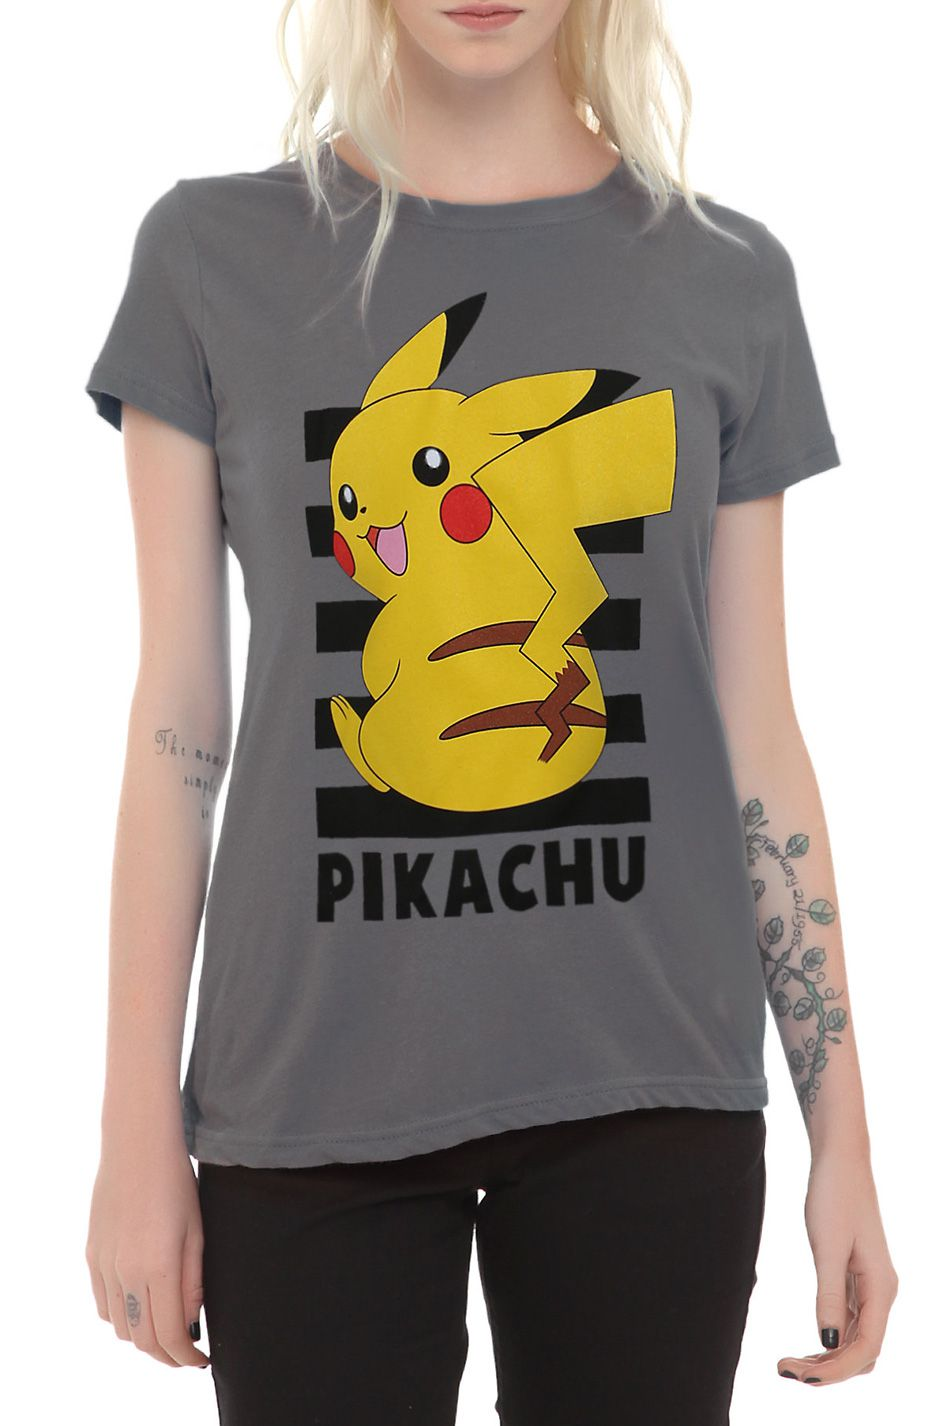 Pokemon GO Pikachu Hot Women